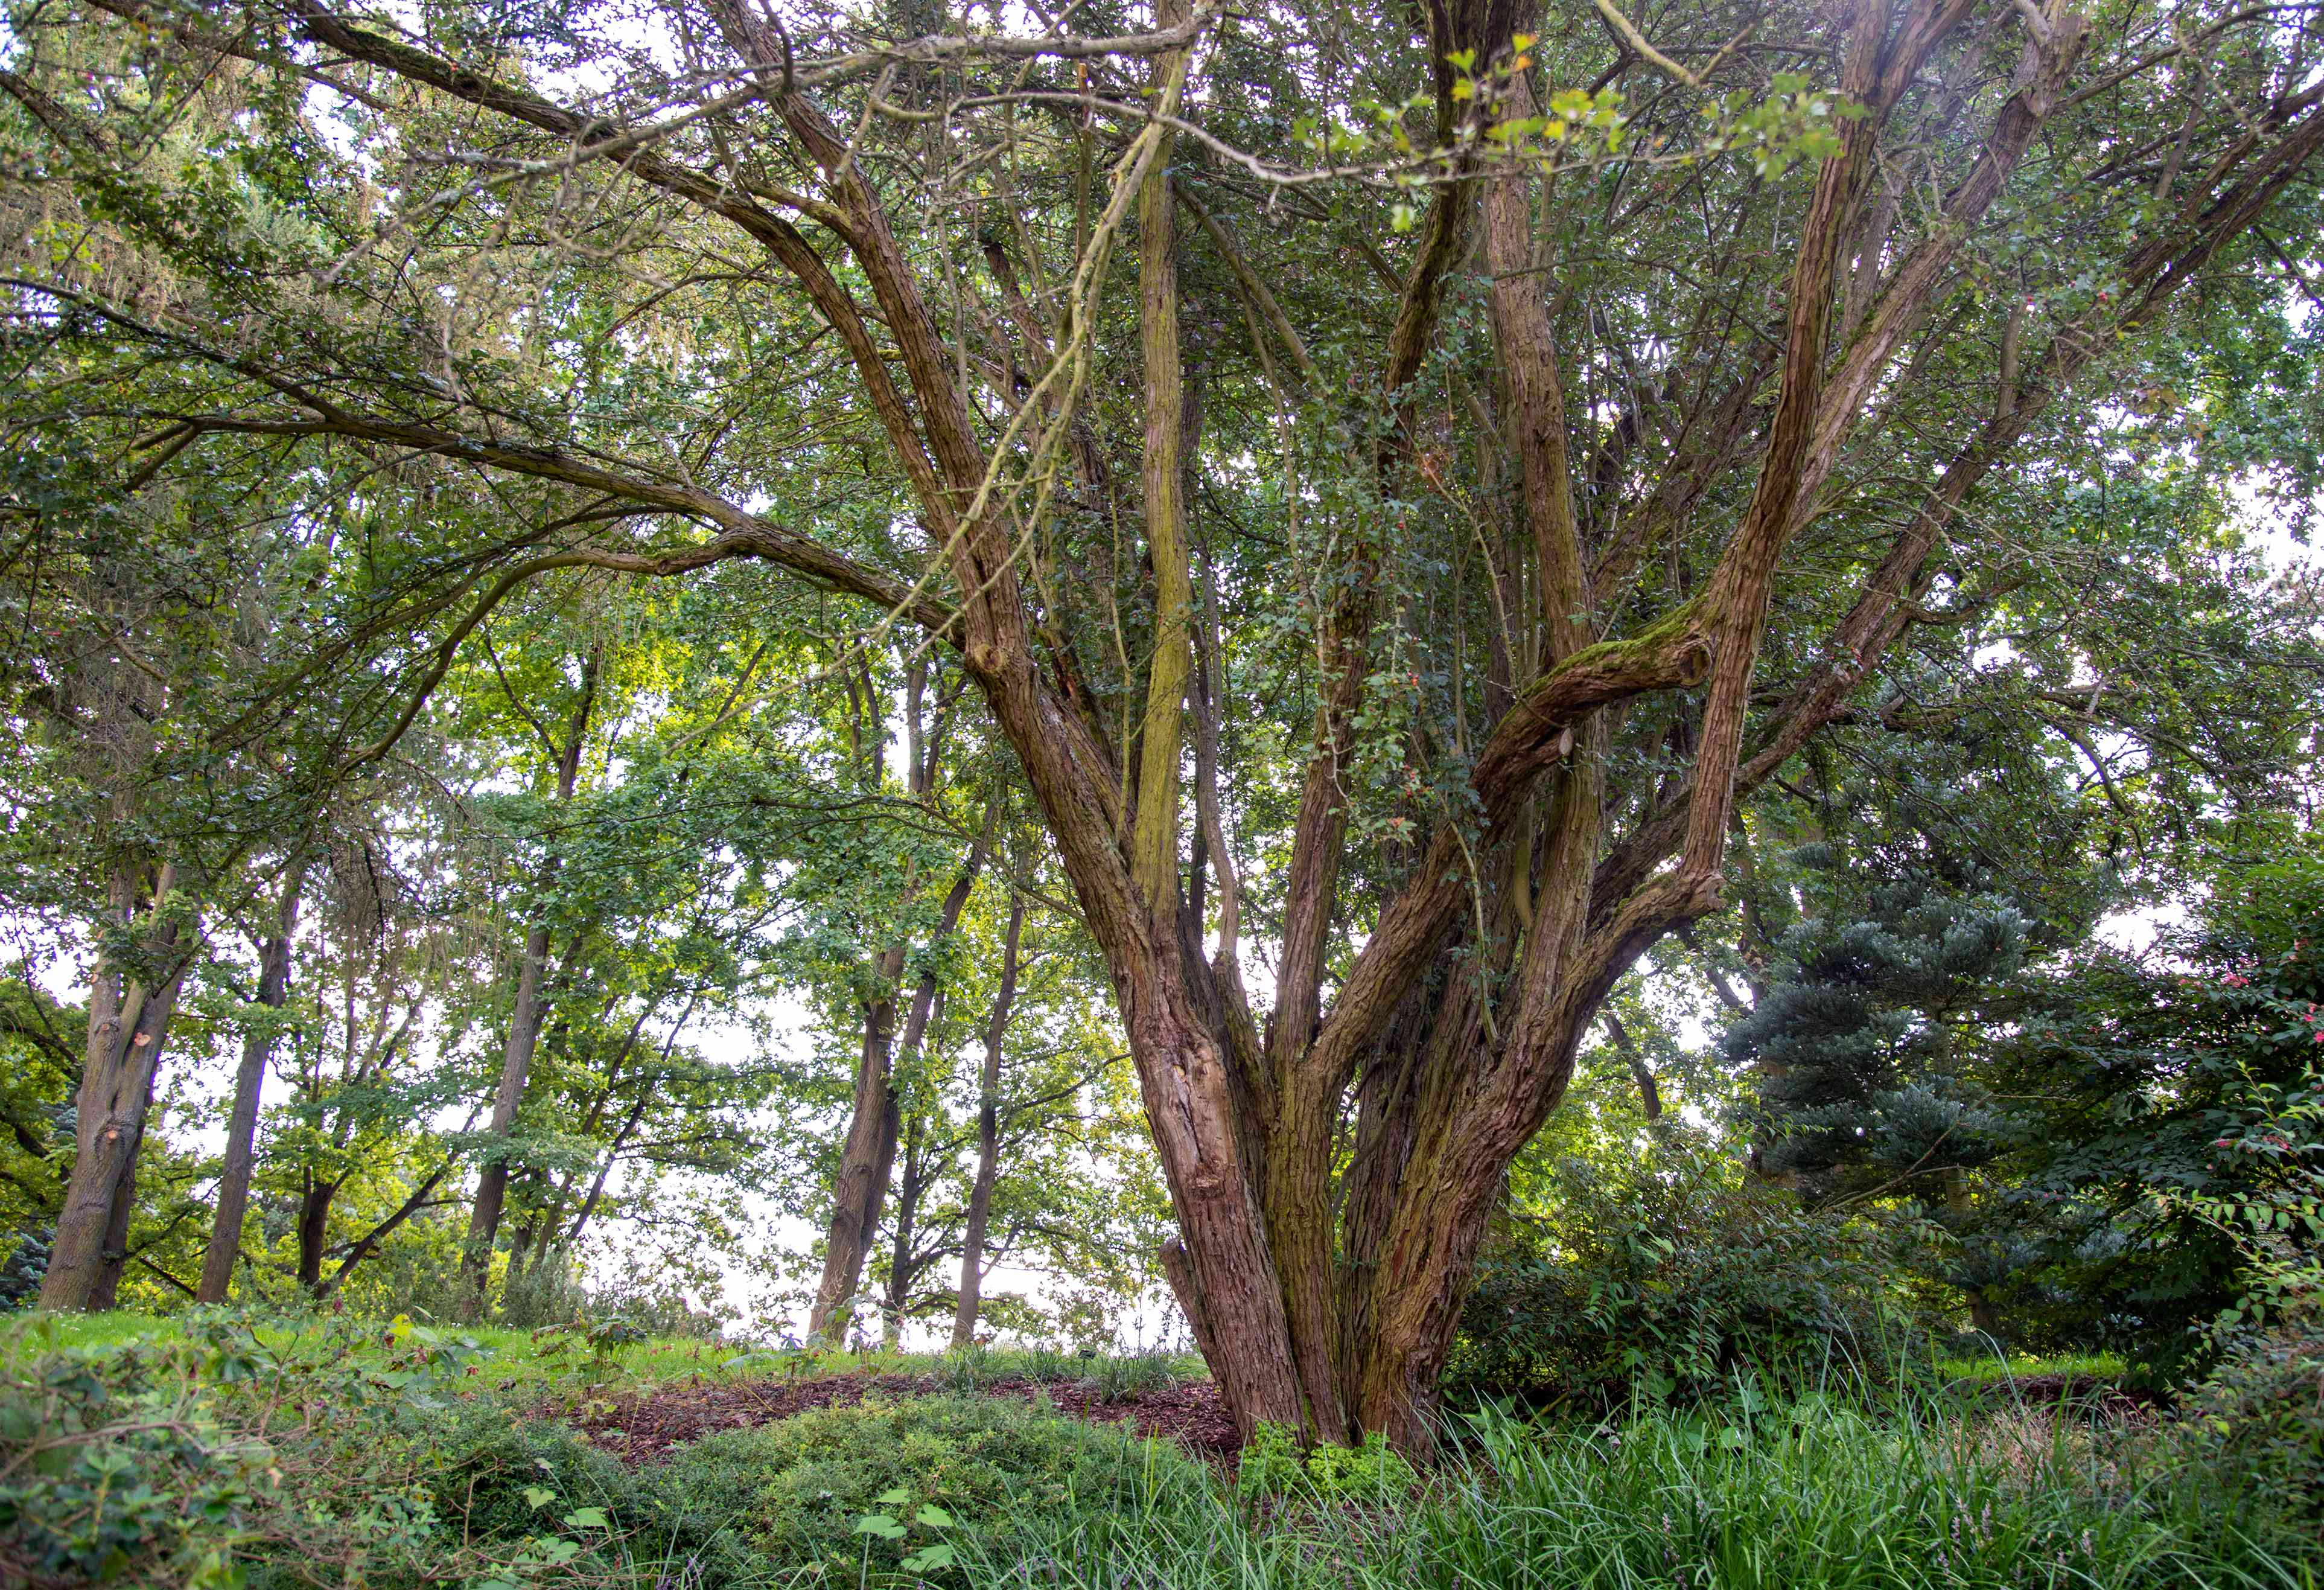 English hawthorn tree with multiple trunks sprawling and twisted branches growing upwards